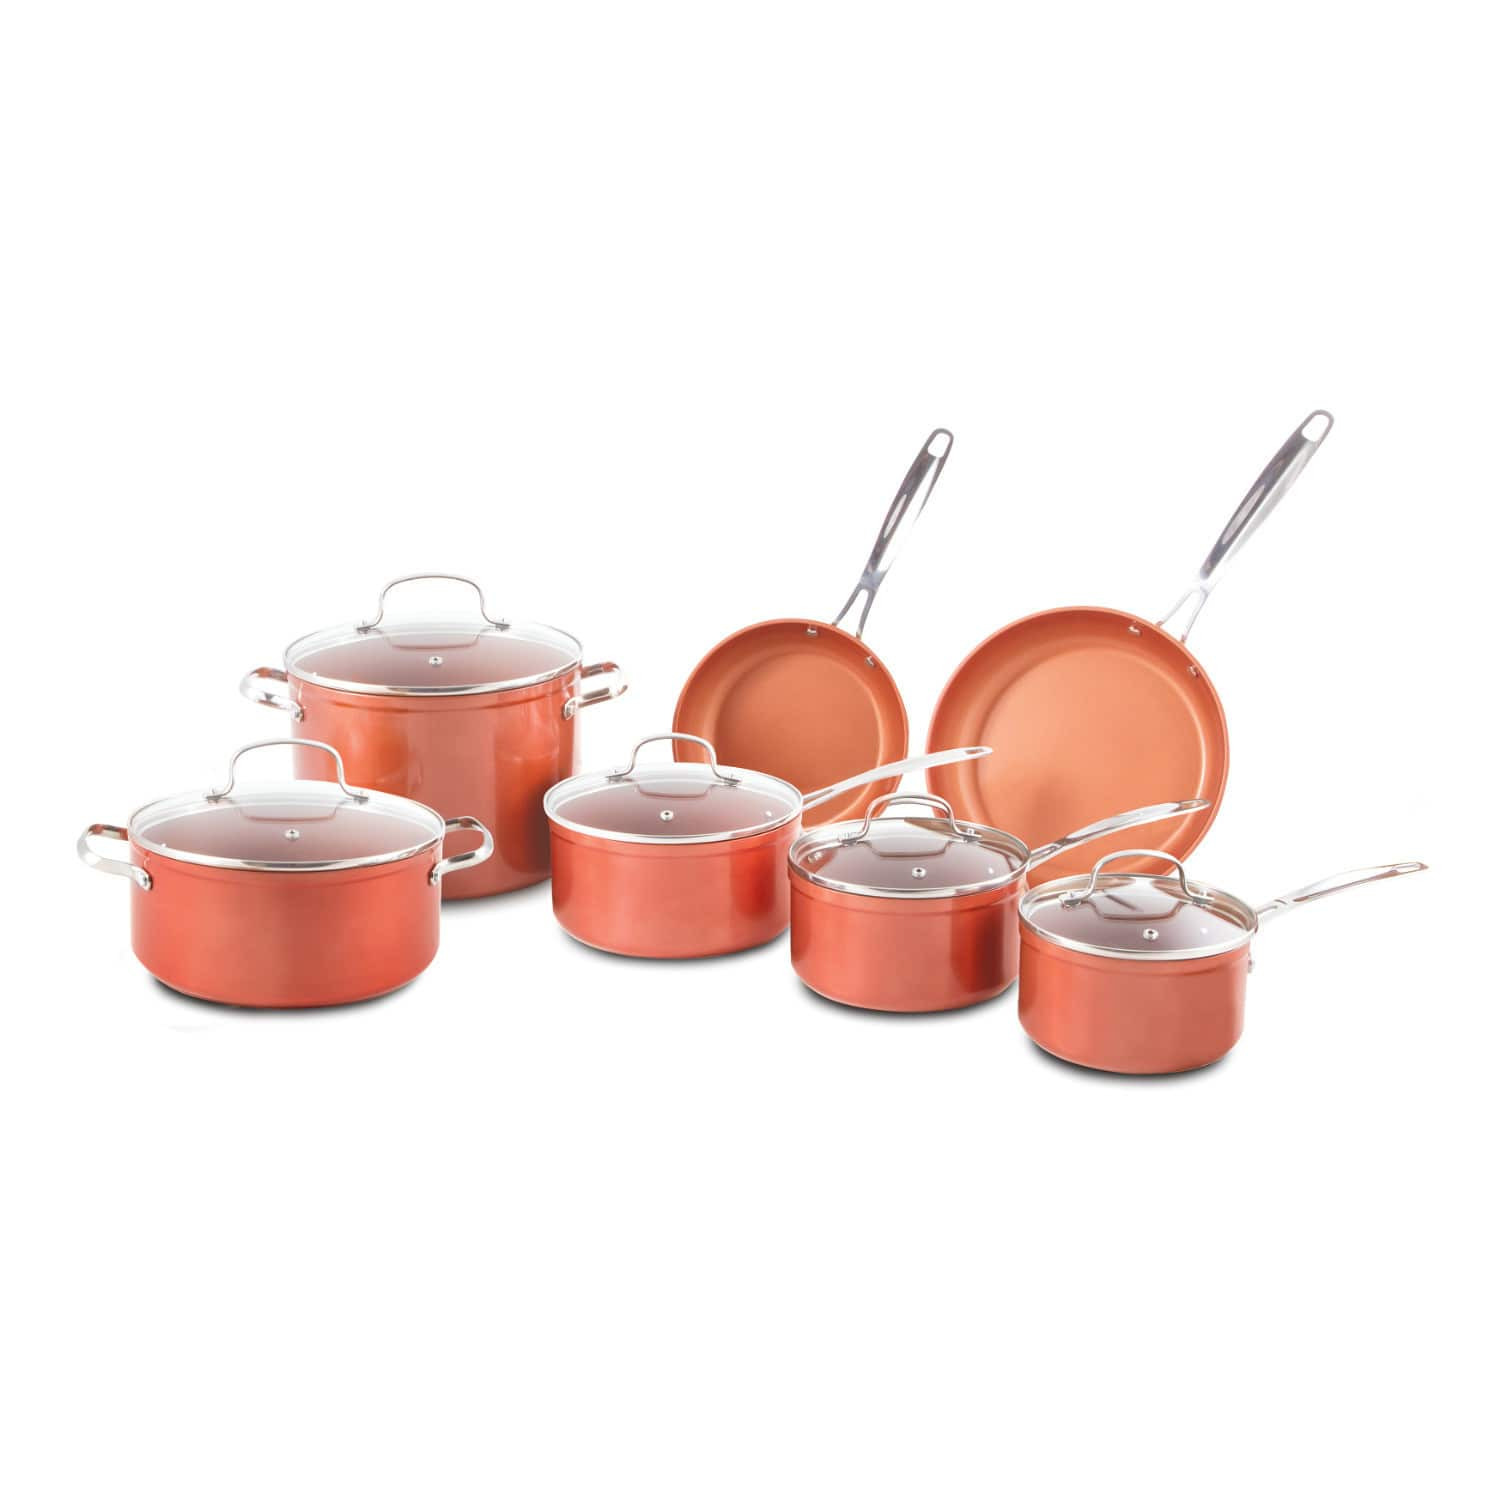 NuWave 25100 5-inch Ceramic Knife $9.95, NuWave Twister 7-Piece Multi-Purpose Blender $24.95, NuWave Gold Precision Induction Cooktop w/ 9-inch Hard Anodized Fry Pan $64.95 & More